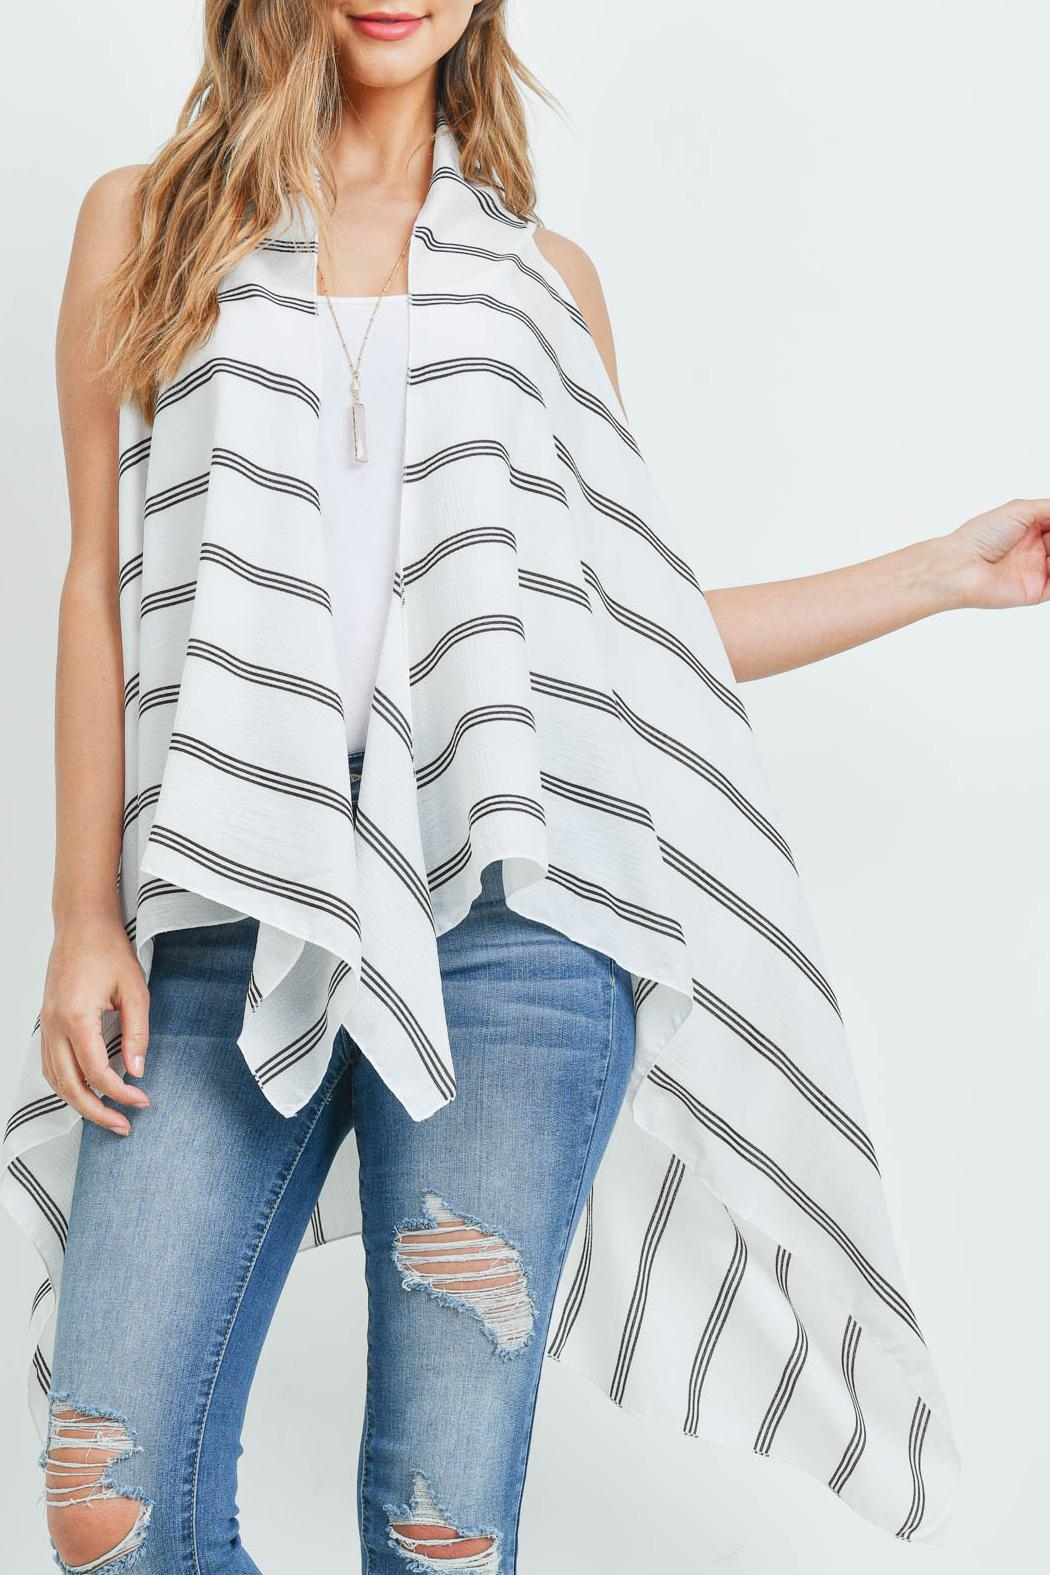 Riah Fashion Striped-Print-Kimono-Vest - Back Cropped Image